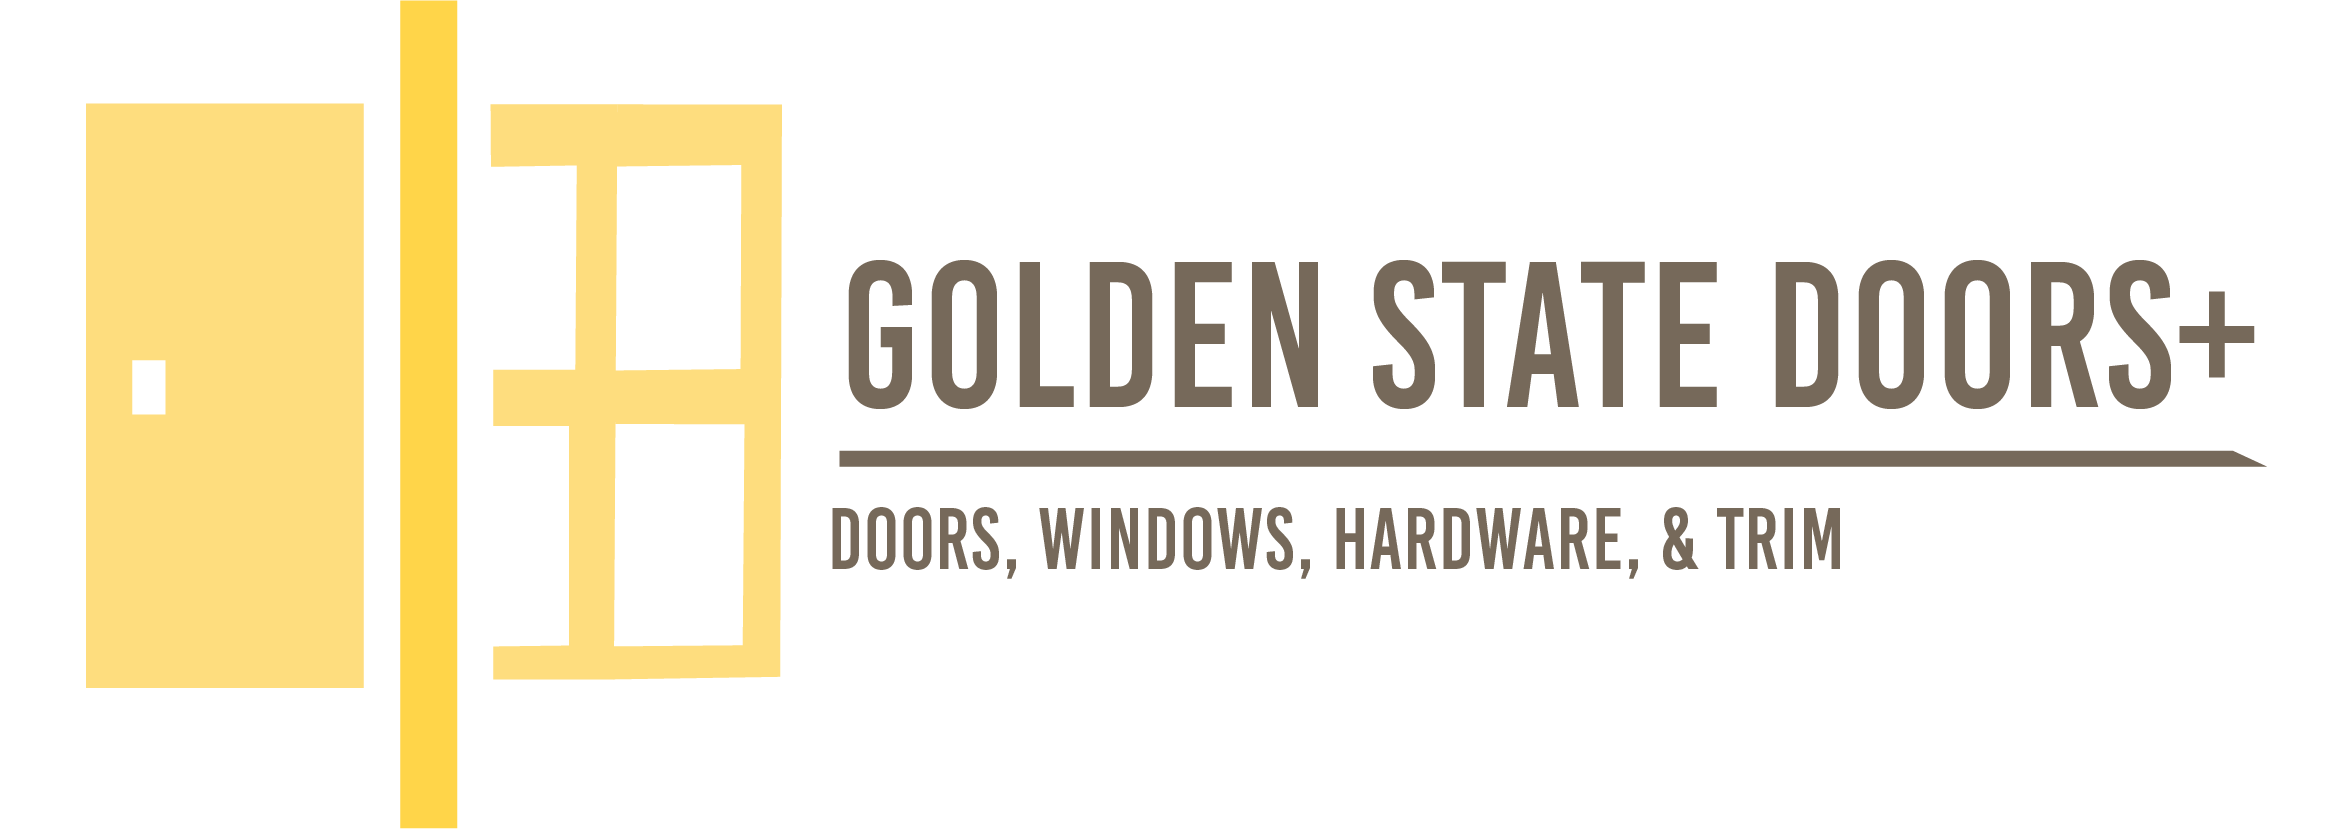 The Folding Door Store uses Golden State Doors when installing new entry doors at your home.